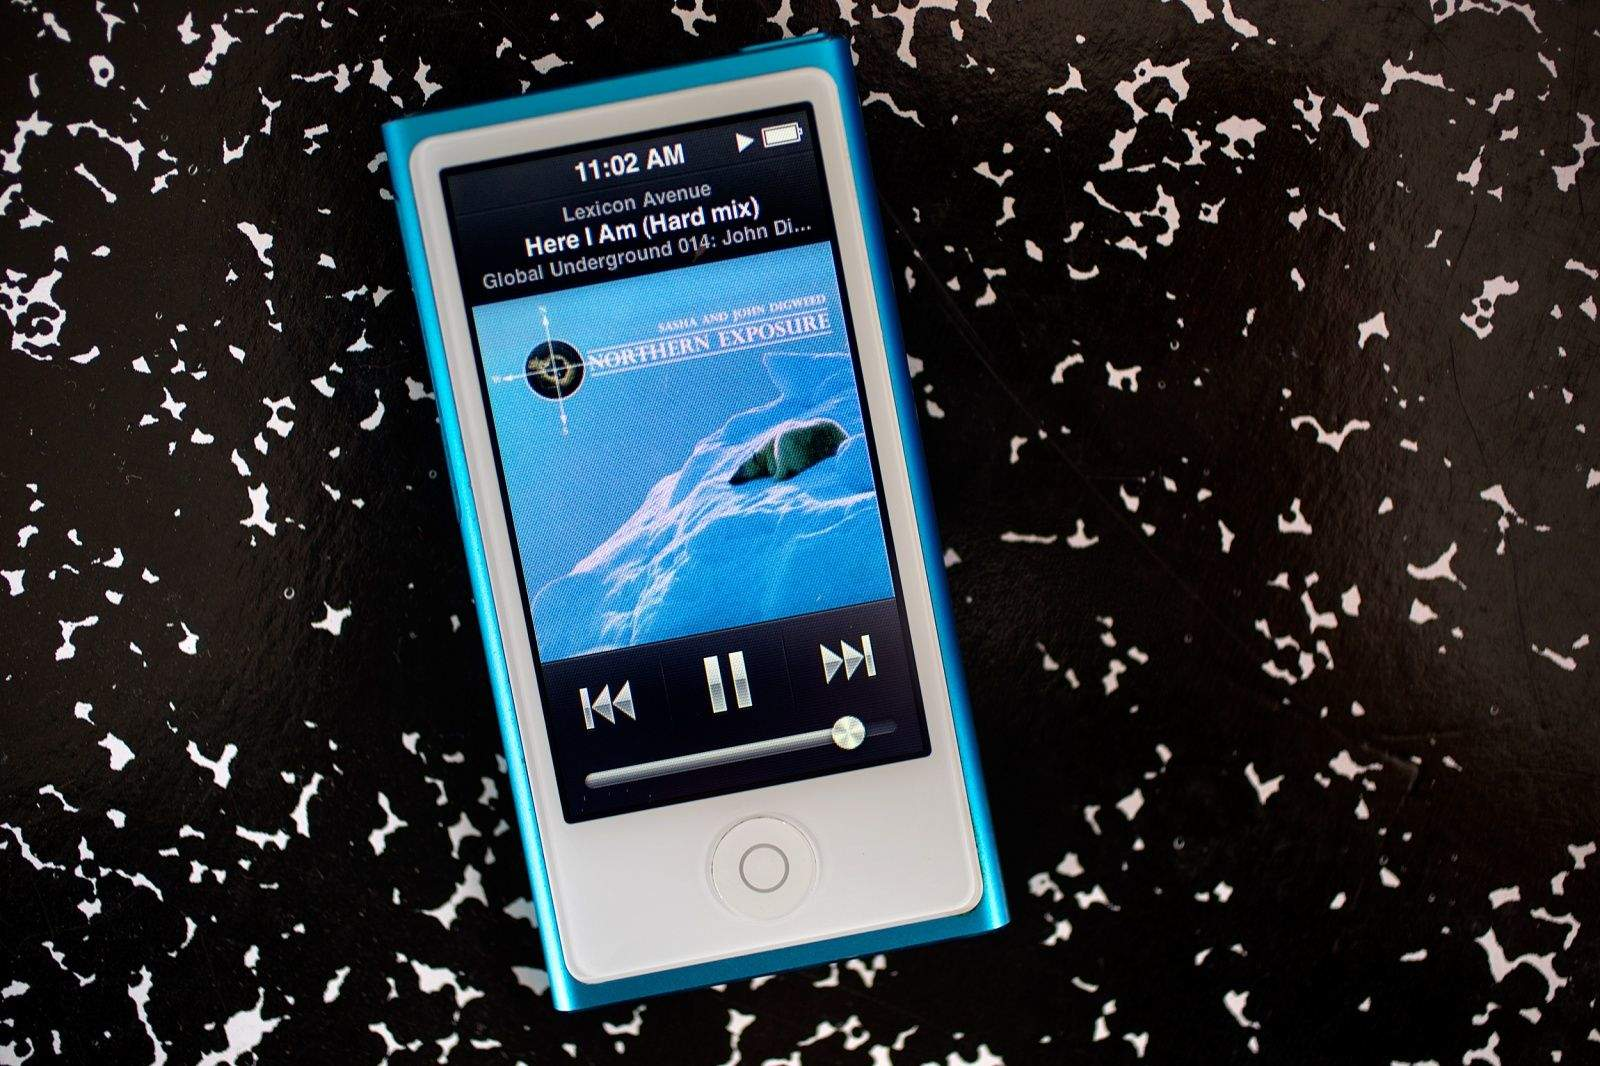 how to play saved apple music on old ipod touch